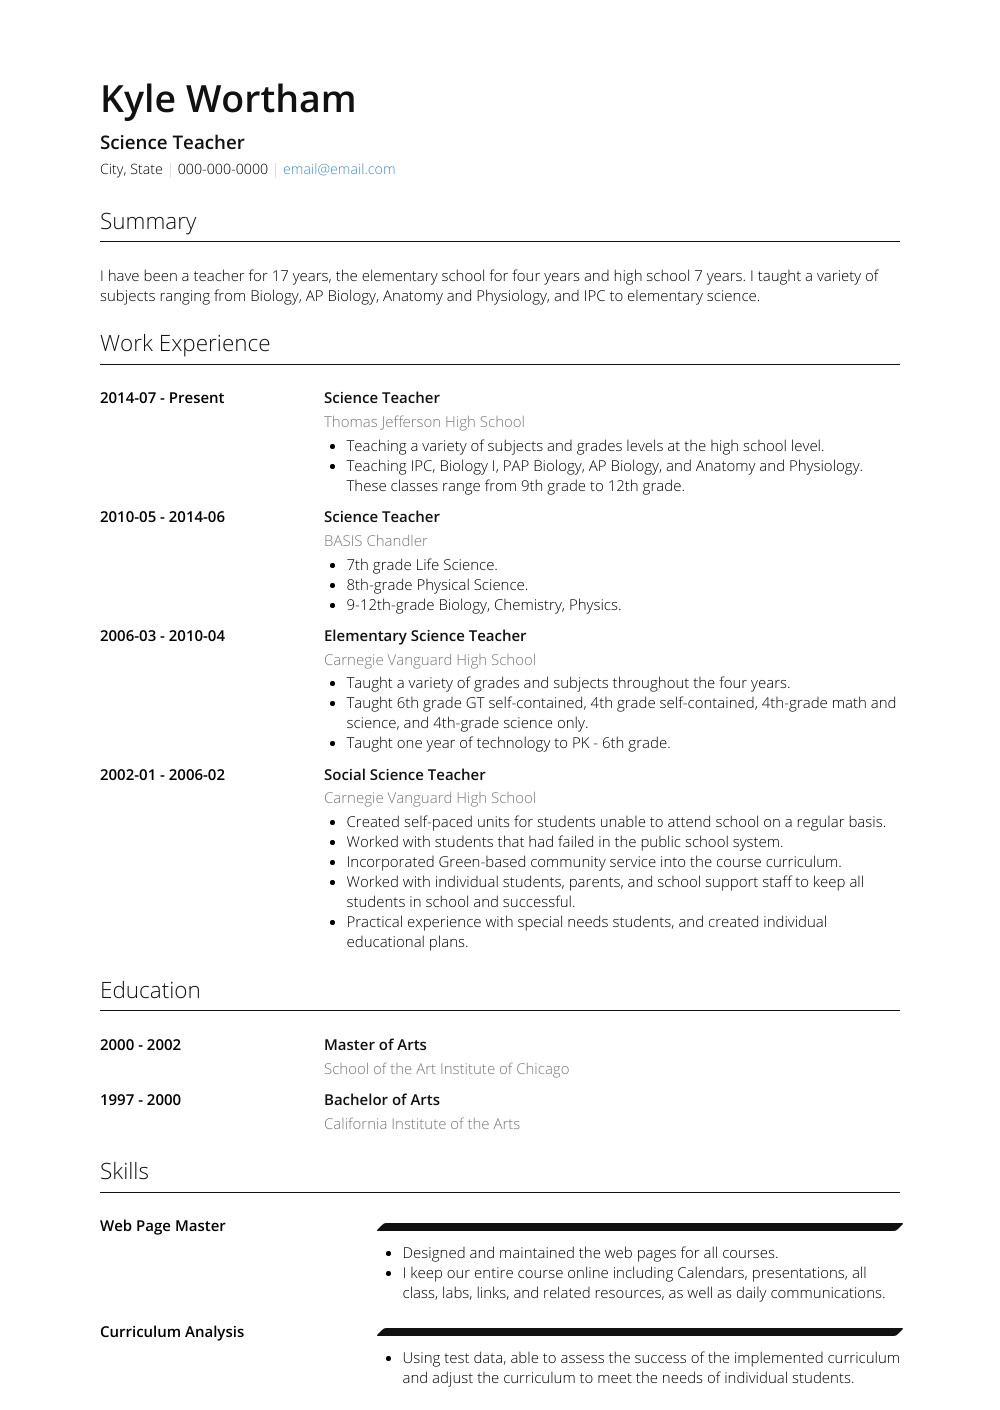 Science Teacher Resume Sample and Template